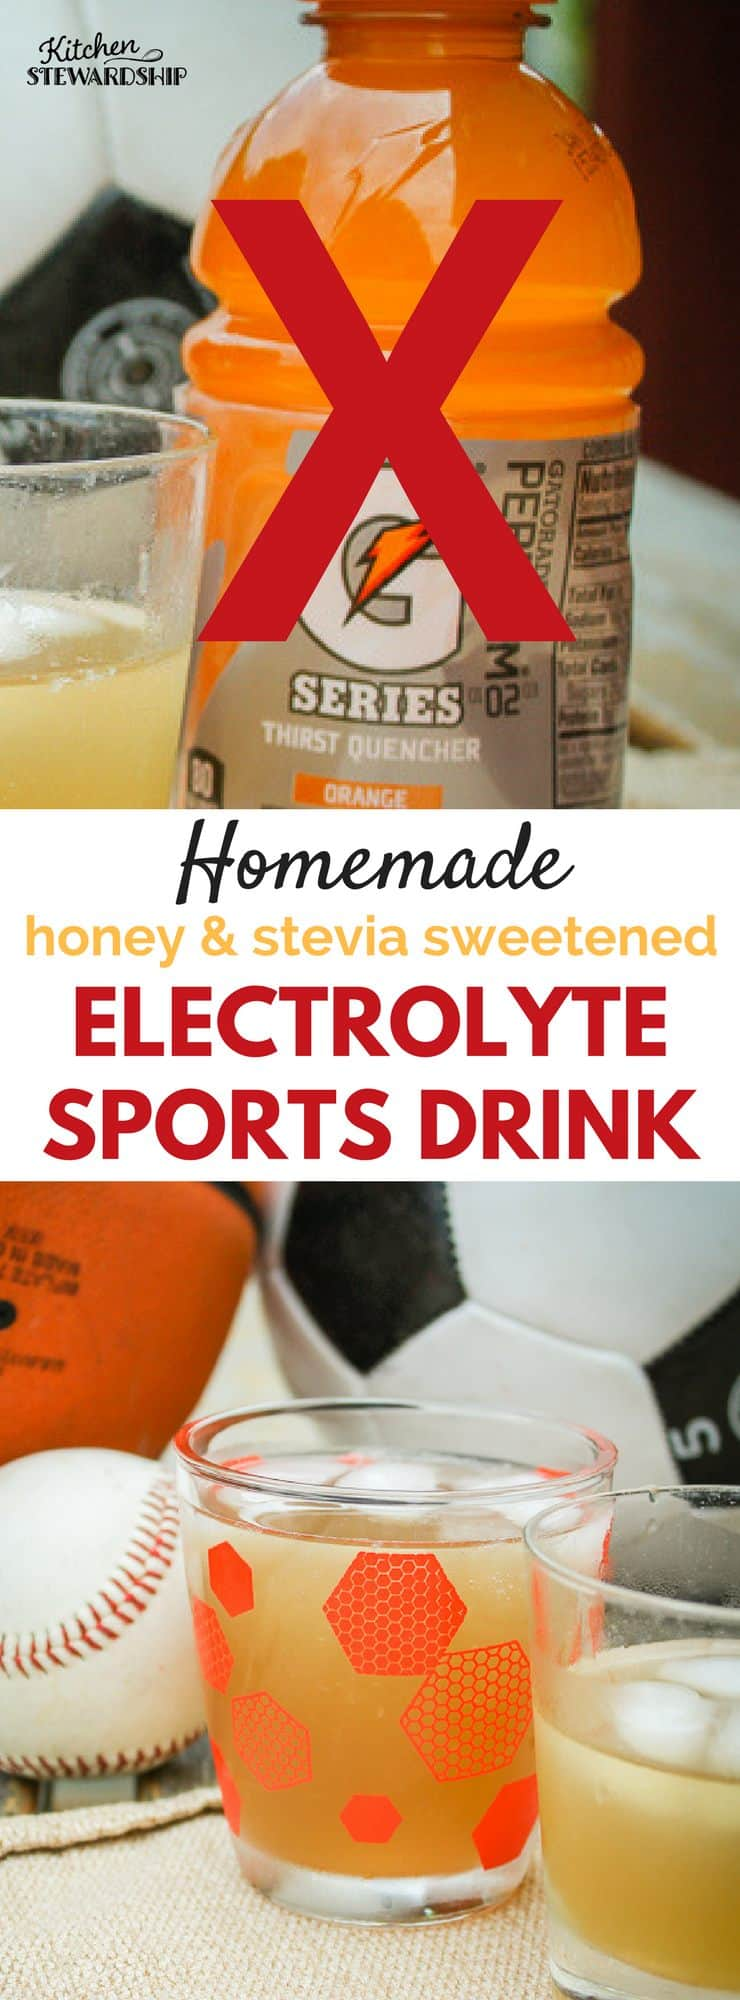 Like Gatorade but want something natural to replenish electrolytes? Here's a homemade sports drink recipe with honey and/or stevia that tastes just like lemon-lime Gatorade, but at a fraction of the cost and 100x the health benefits.